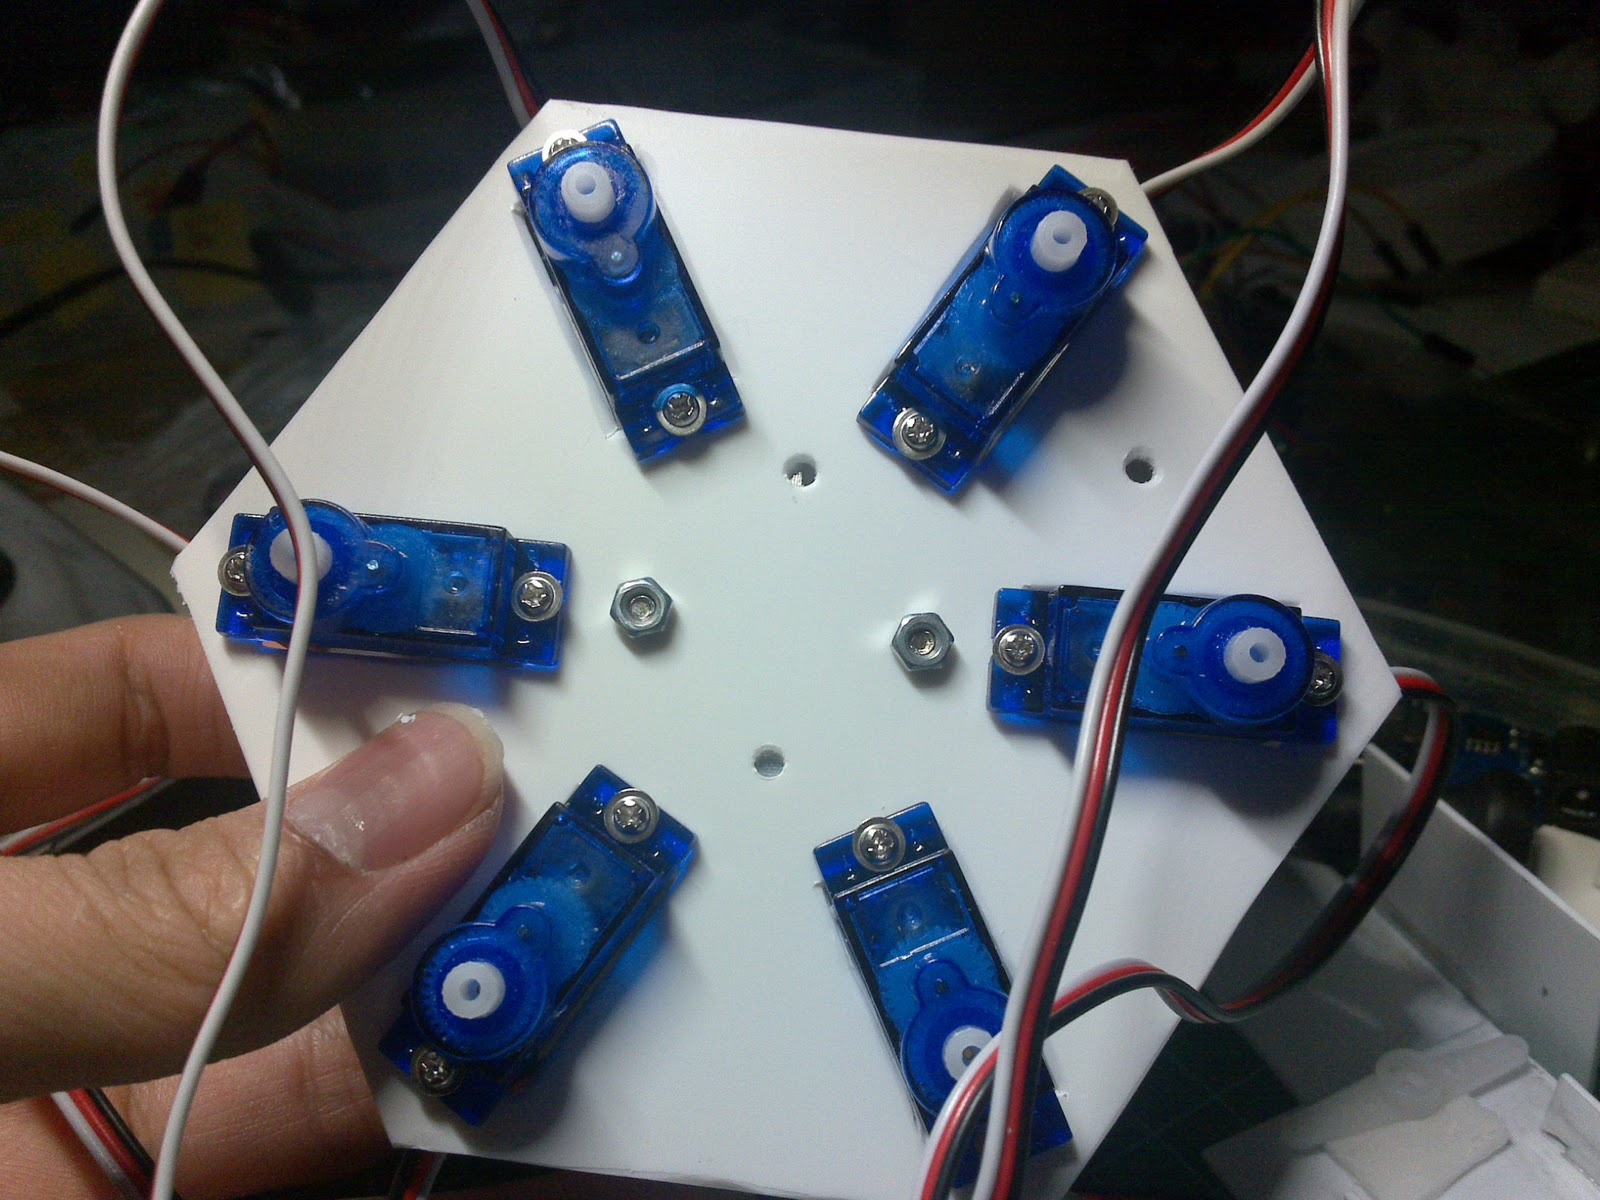 Arduino electronics and programming hexapod robot with